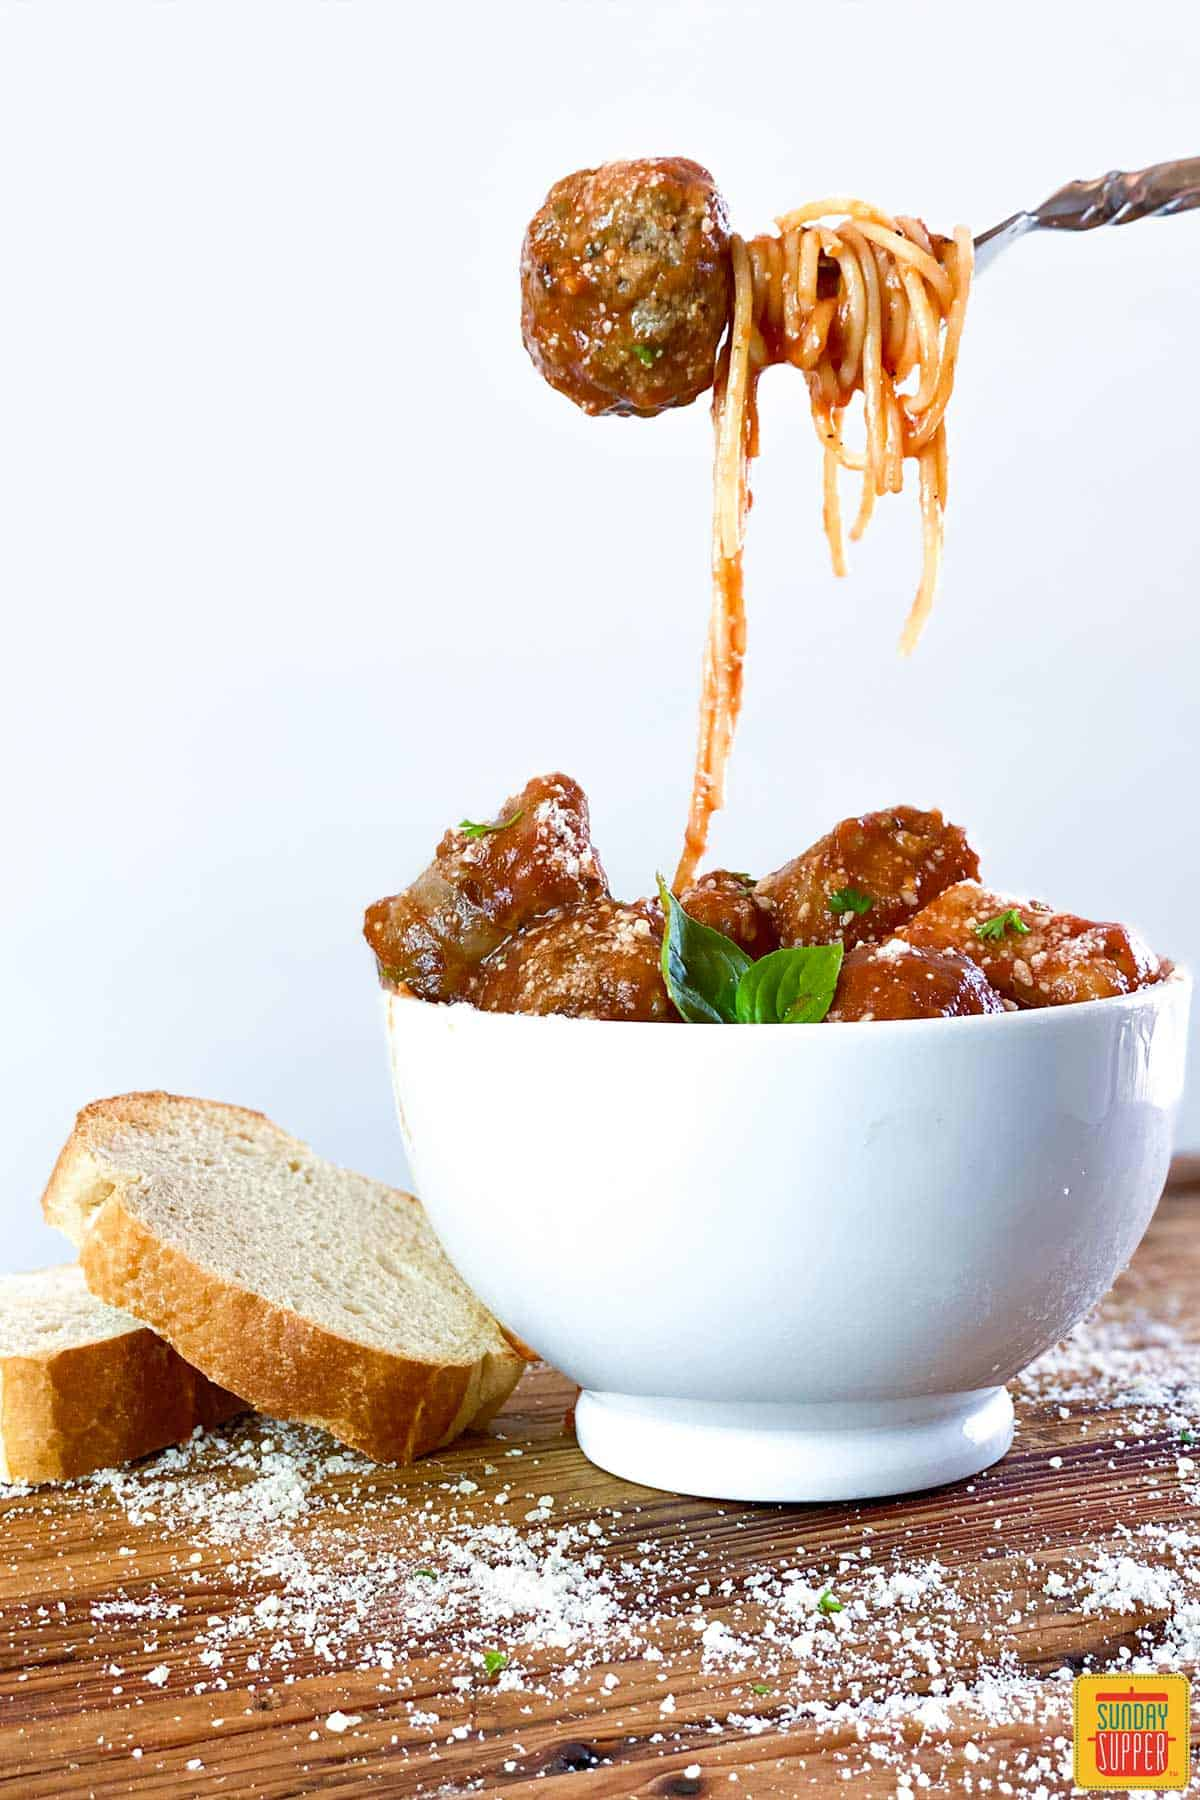 Lifting meatball out of spaghetti with sauce for meatballs in white bowl